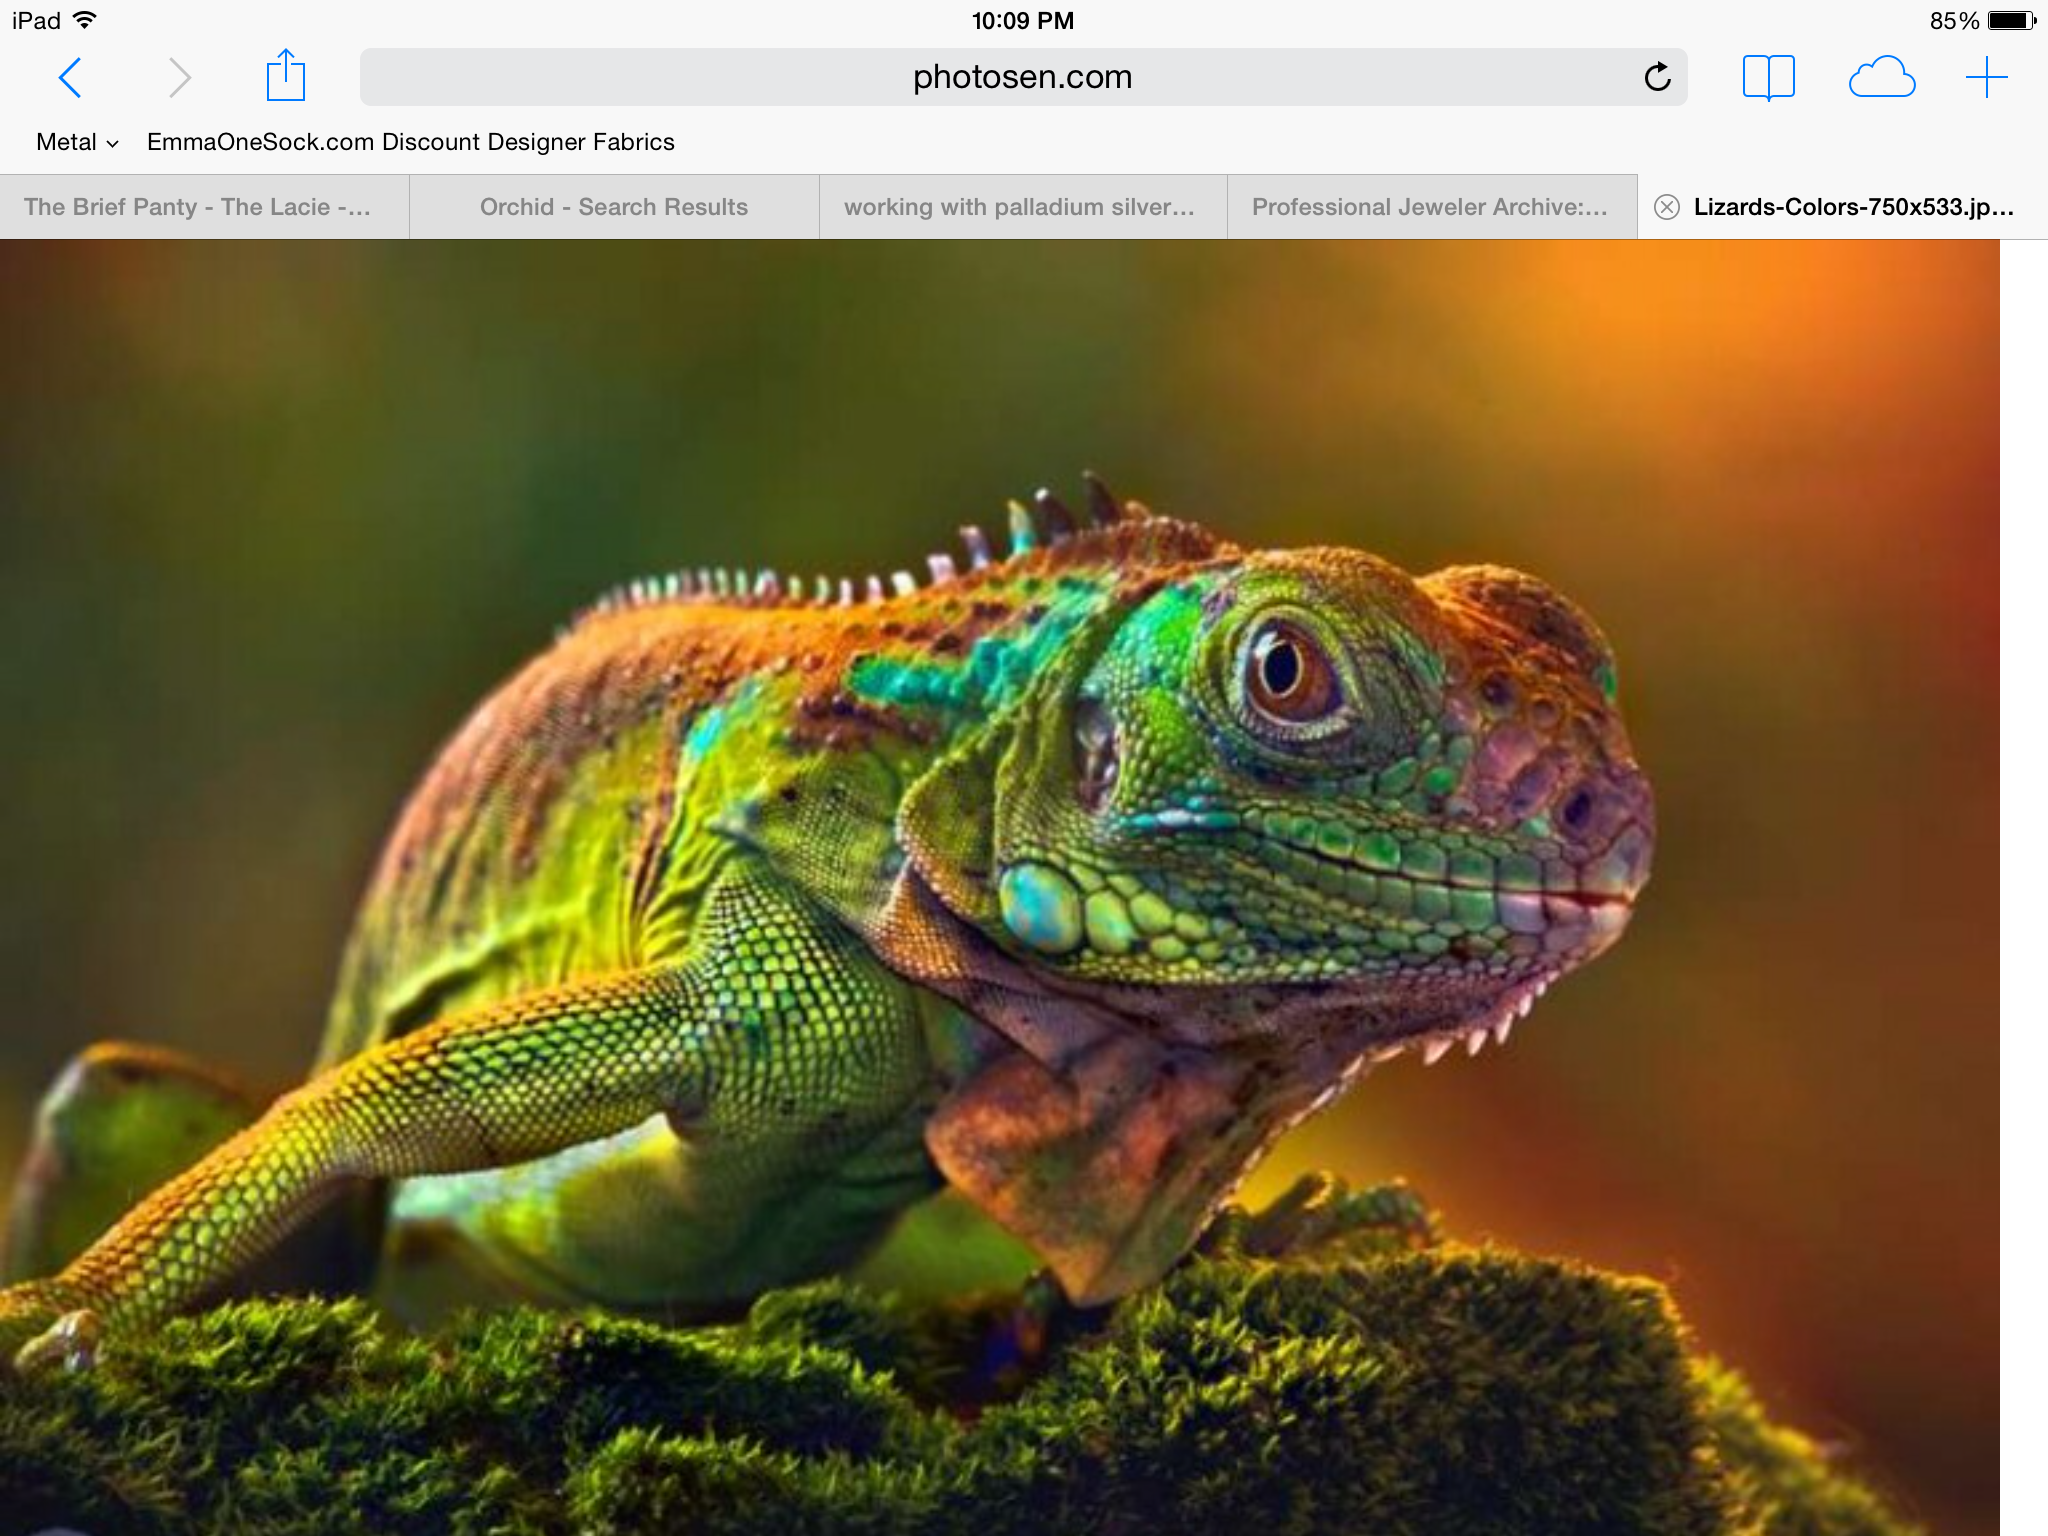 Pin by Cheryl Krismer on Cool lizards Animals beautiful